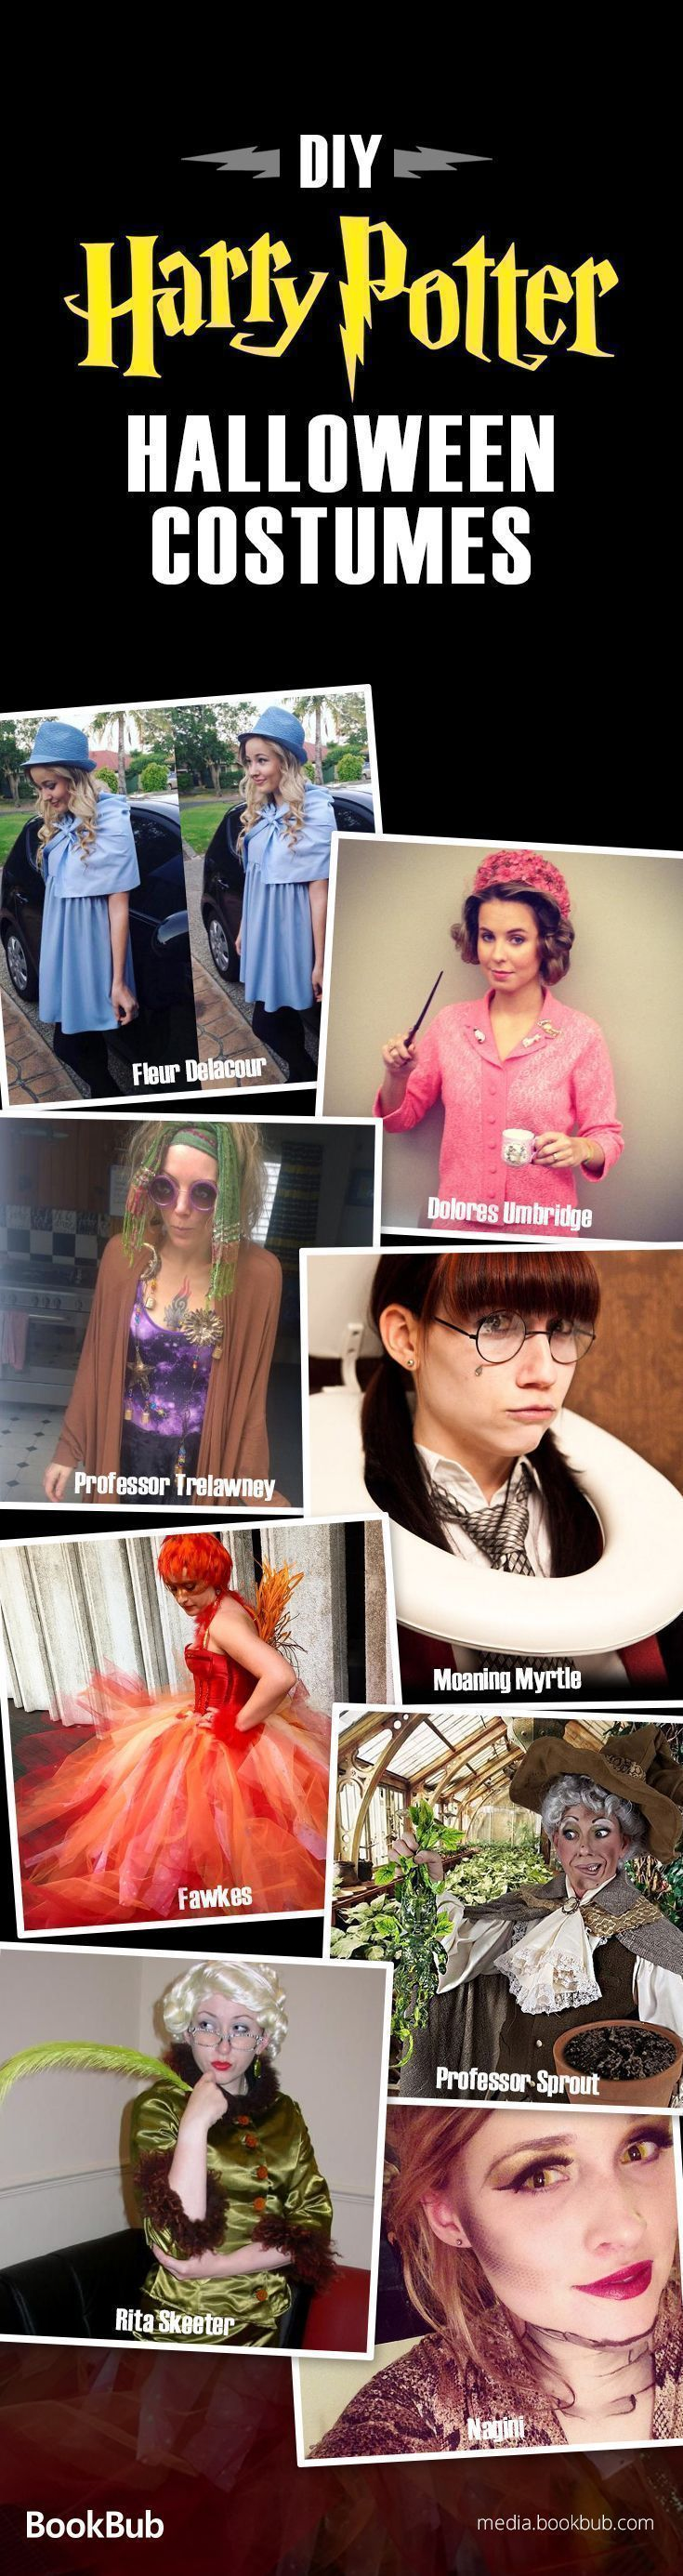 Check out our list of DIY Halloween costumes ideas for Harry Potter fans. These creative and sometimes scary costumes are great for teens, for couples, for adults, and for kids. #Costumes #diyhalloweencostumes #halloweencostumesadult #halloweencoustumescouples #coupleshalloweencostumes #halloweencostumekids